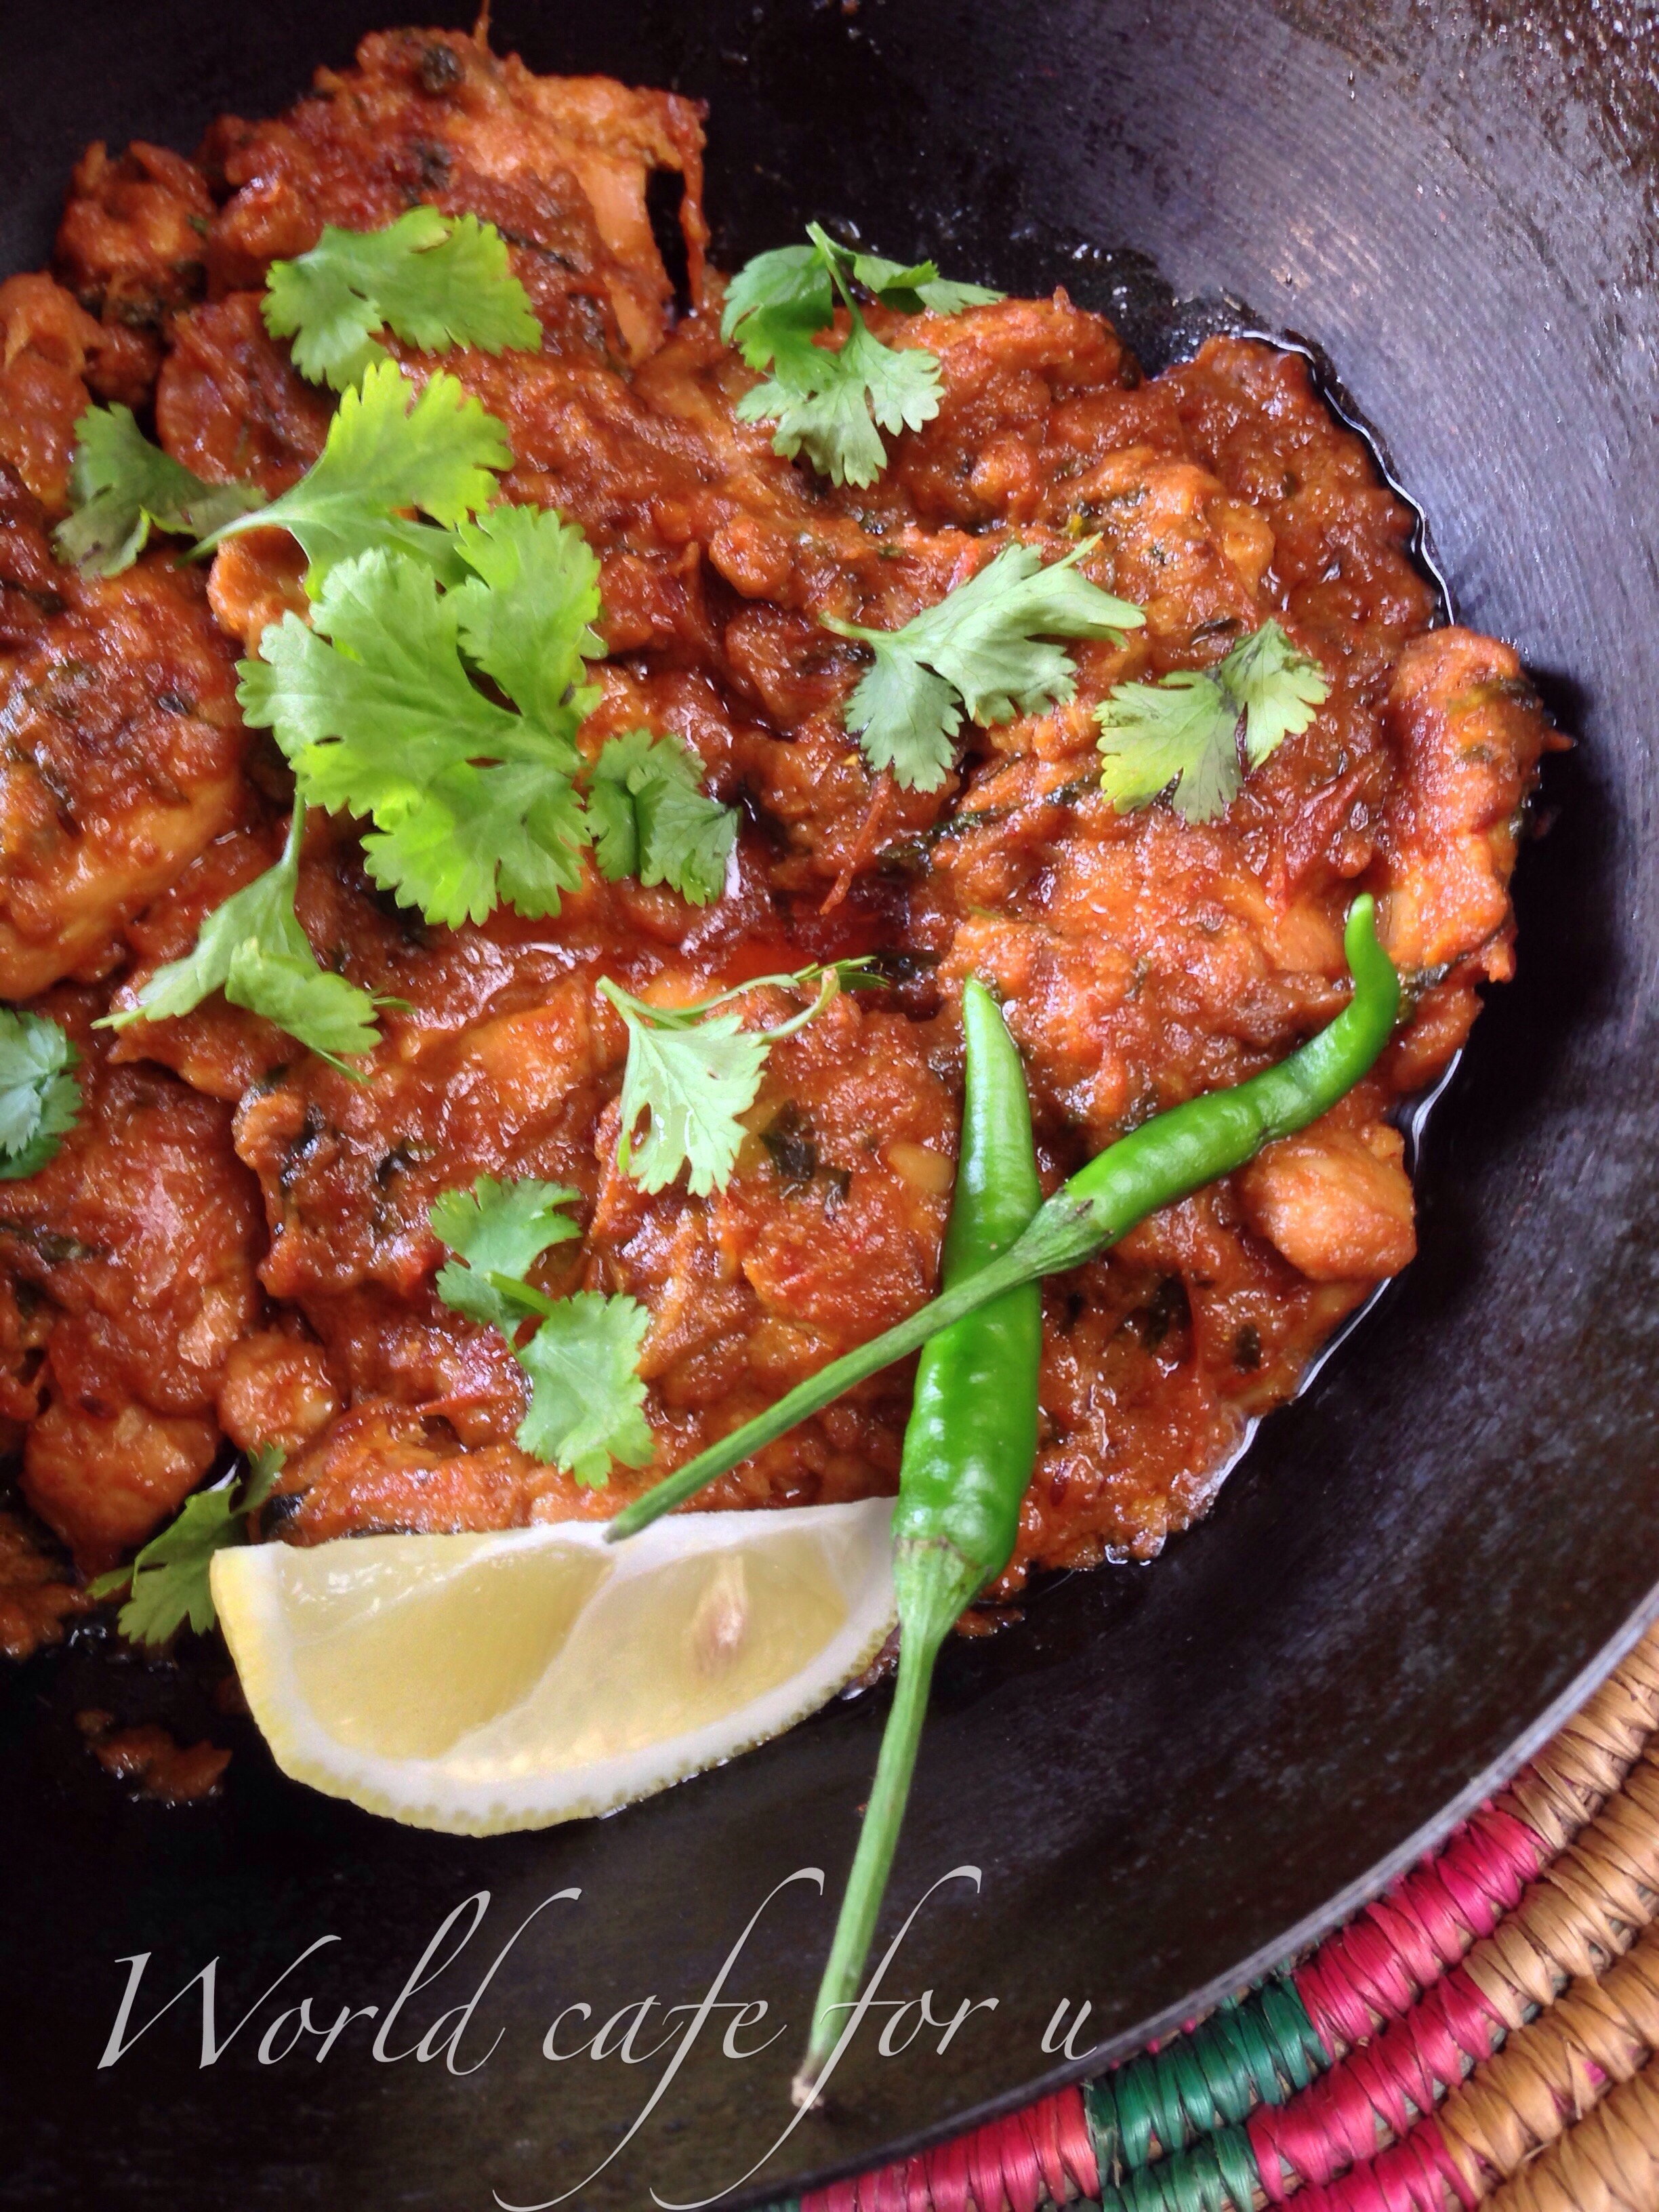 Lahori Chicken Karahi (Dhaba Style) – World cafe for u